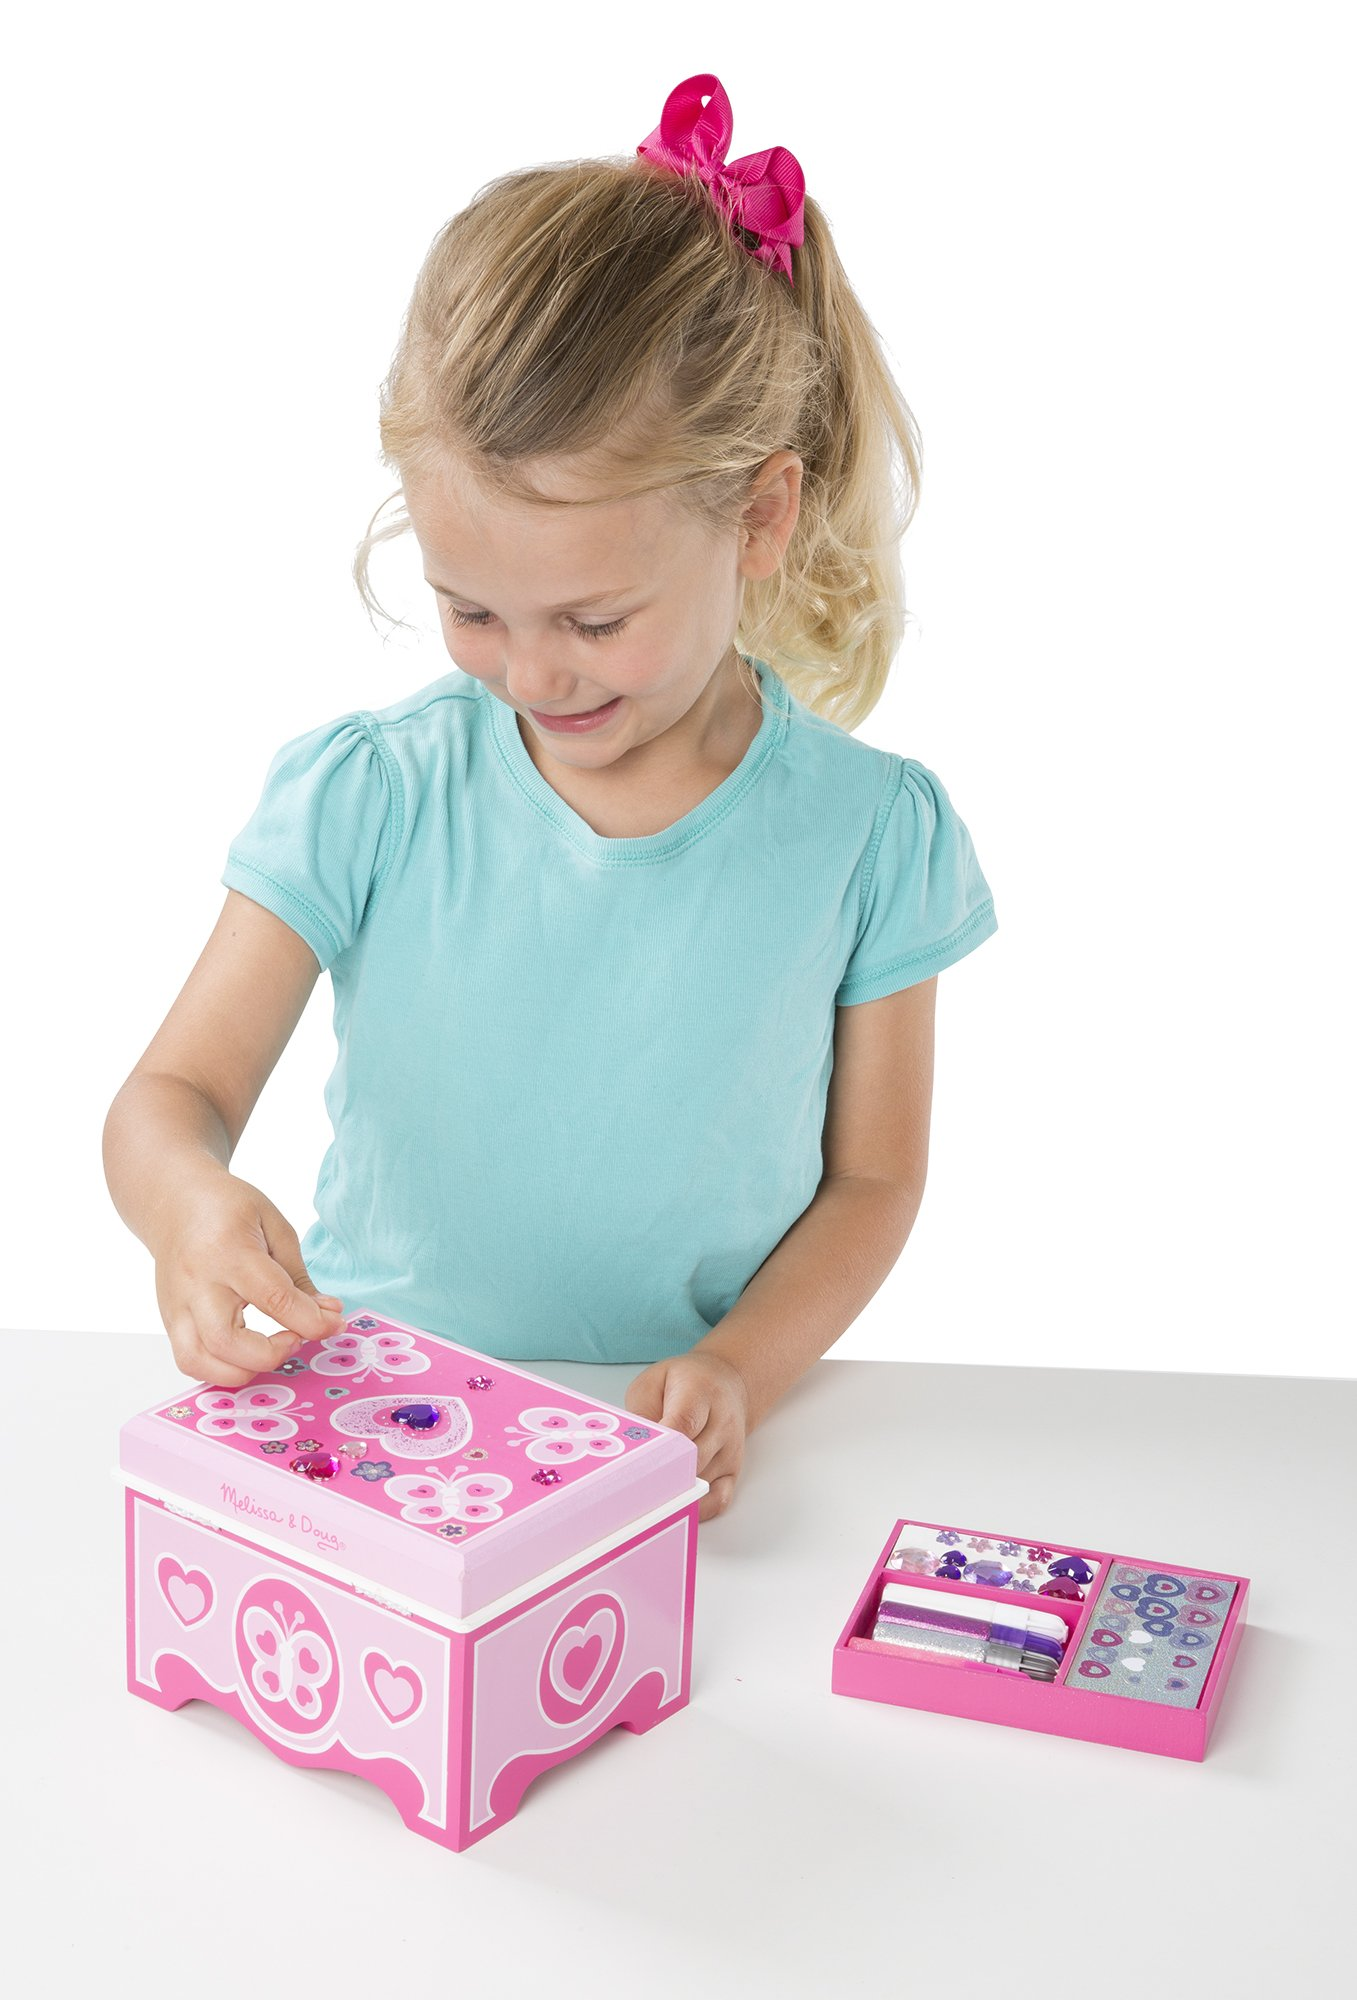 Melissa & Doug Decorate-Your-Own Wooden Jewelry Box Craft Kit by Melissa & Doug (Image #4)